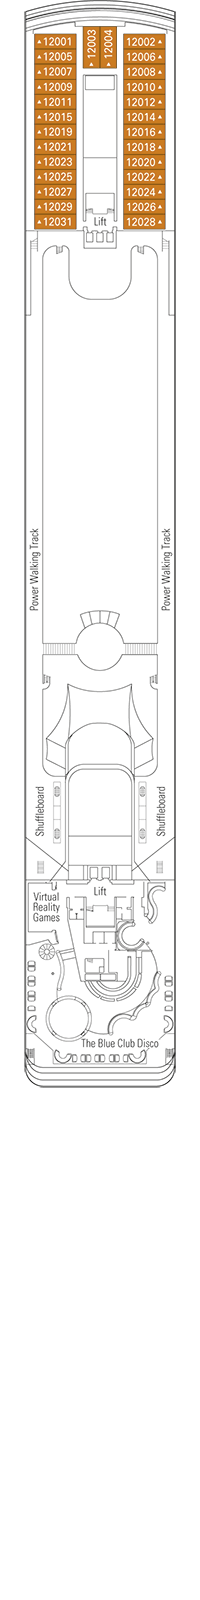 Rossini Deck Plan